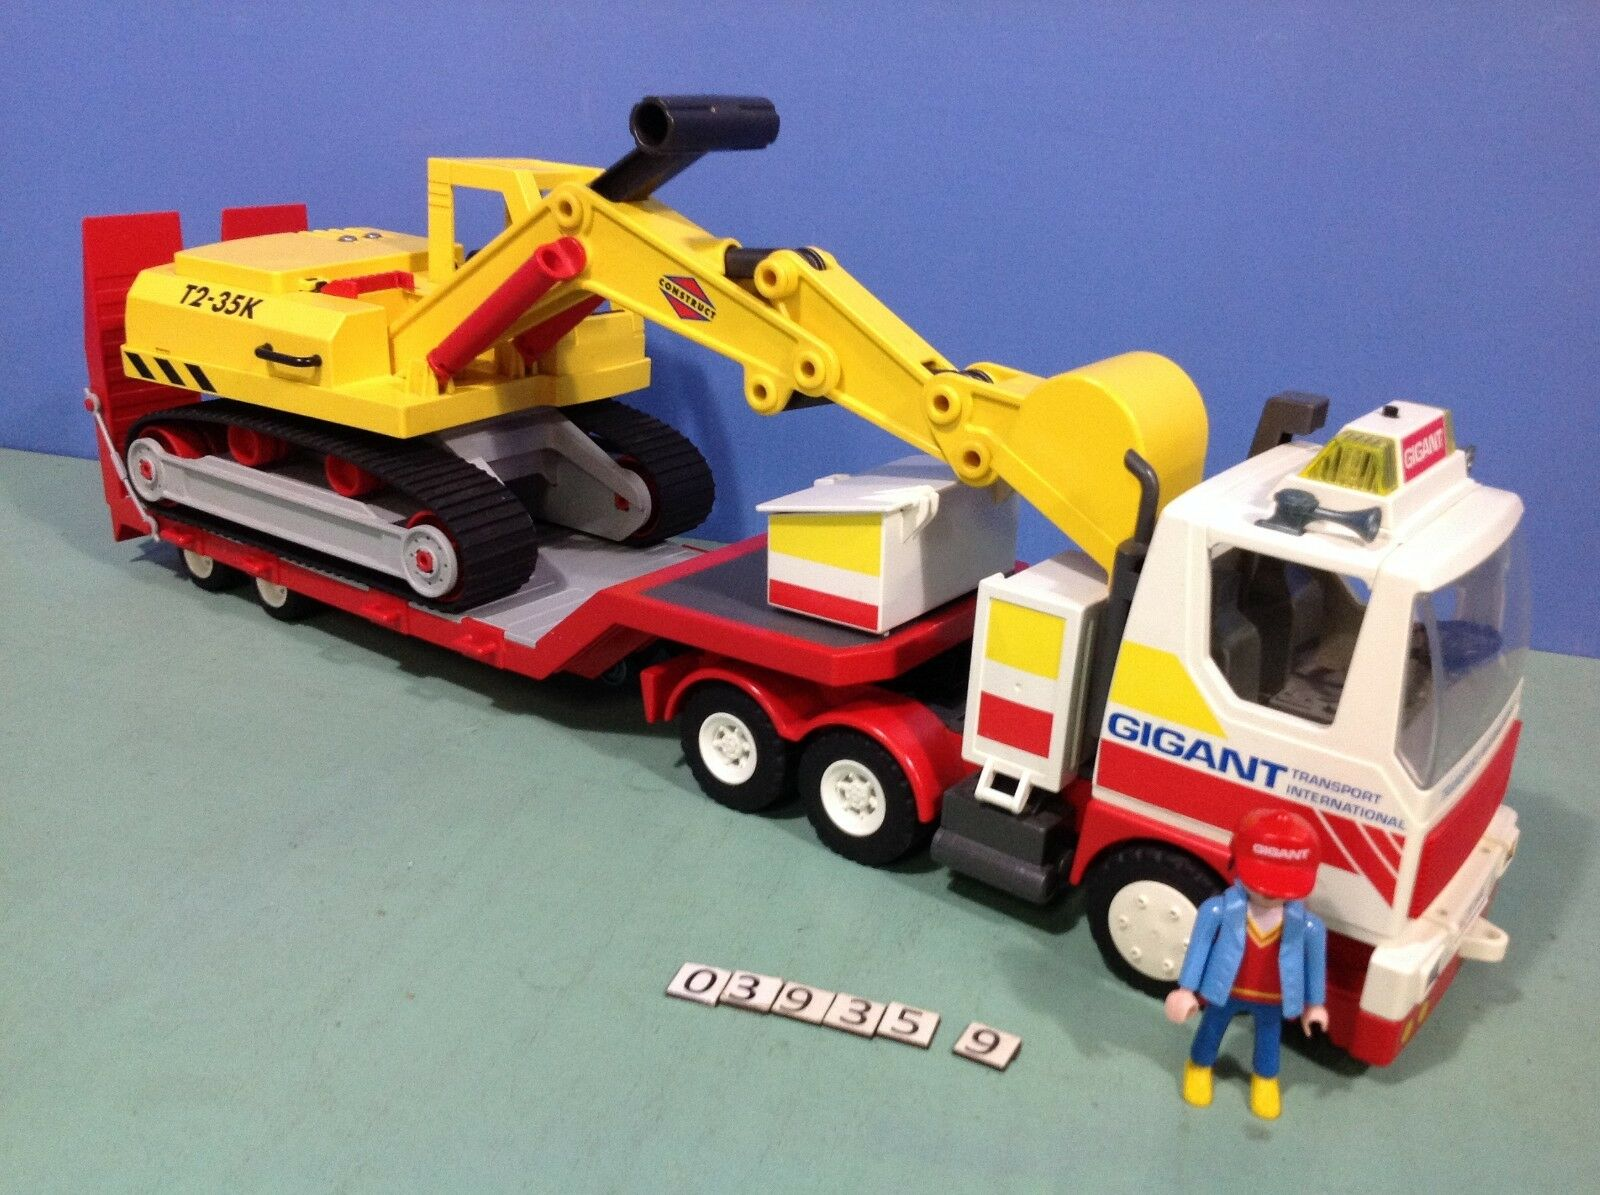 (O3935.9) playmobil Camion transport Gigant ref 3935 + tractopelle ref 3001